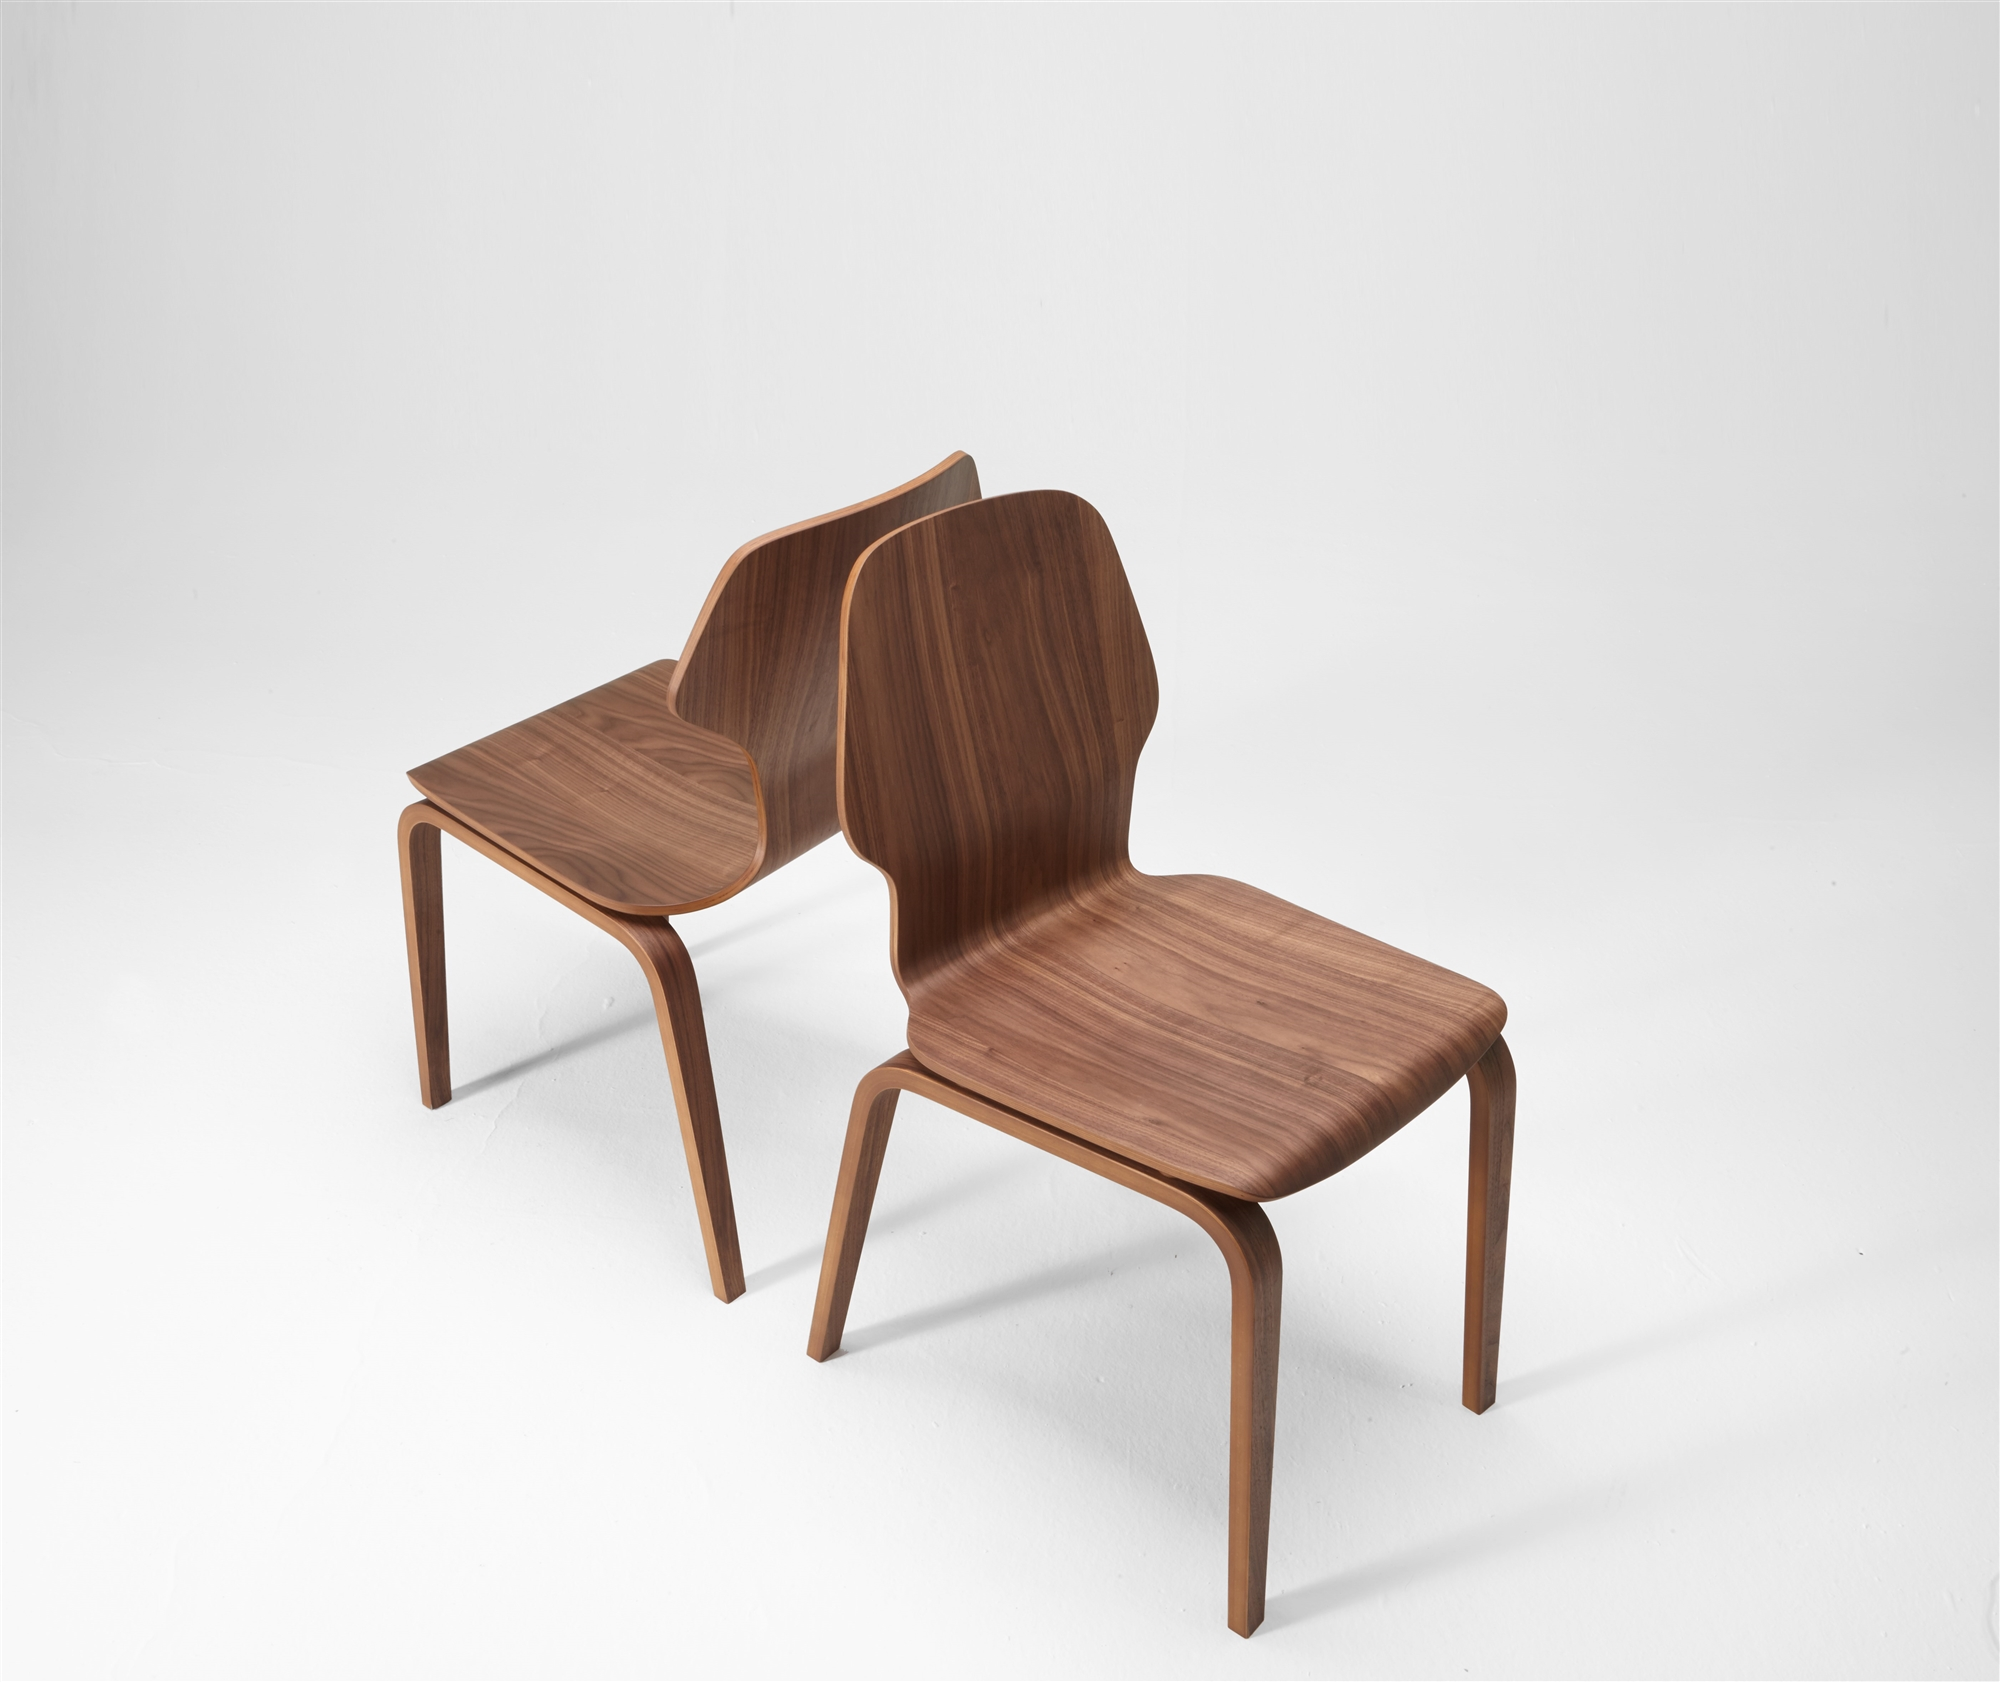 Ginger Chair Caon Arreda